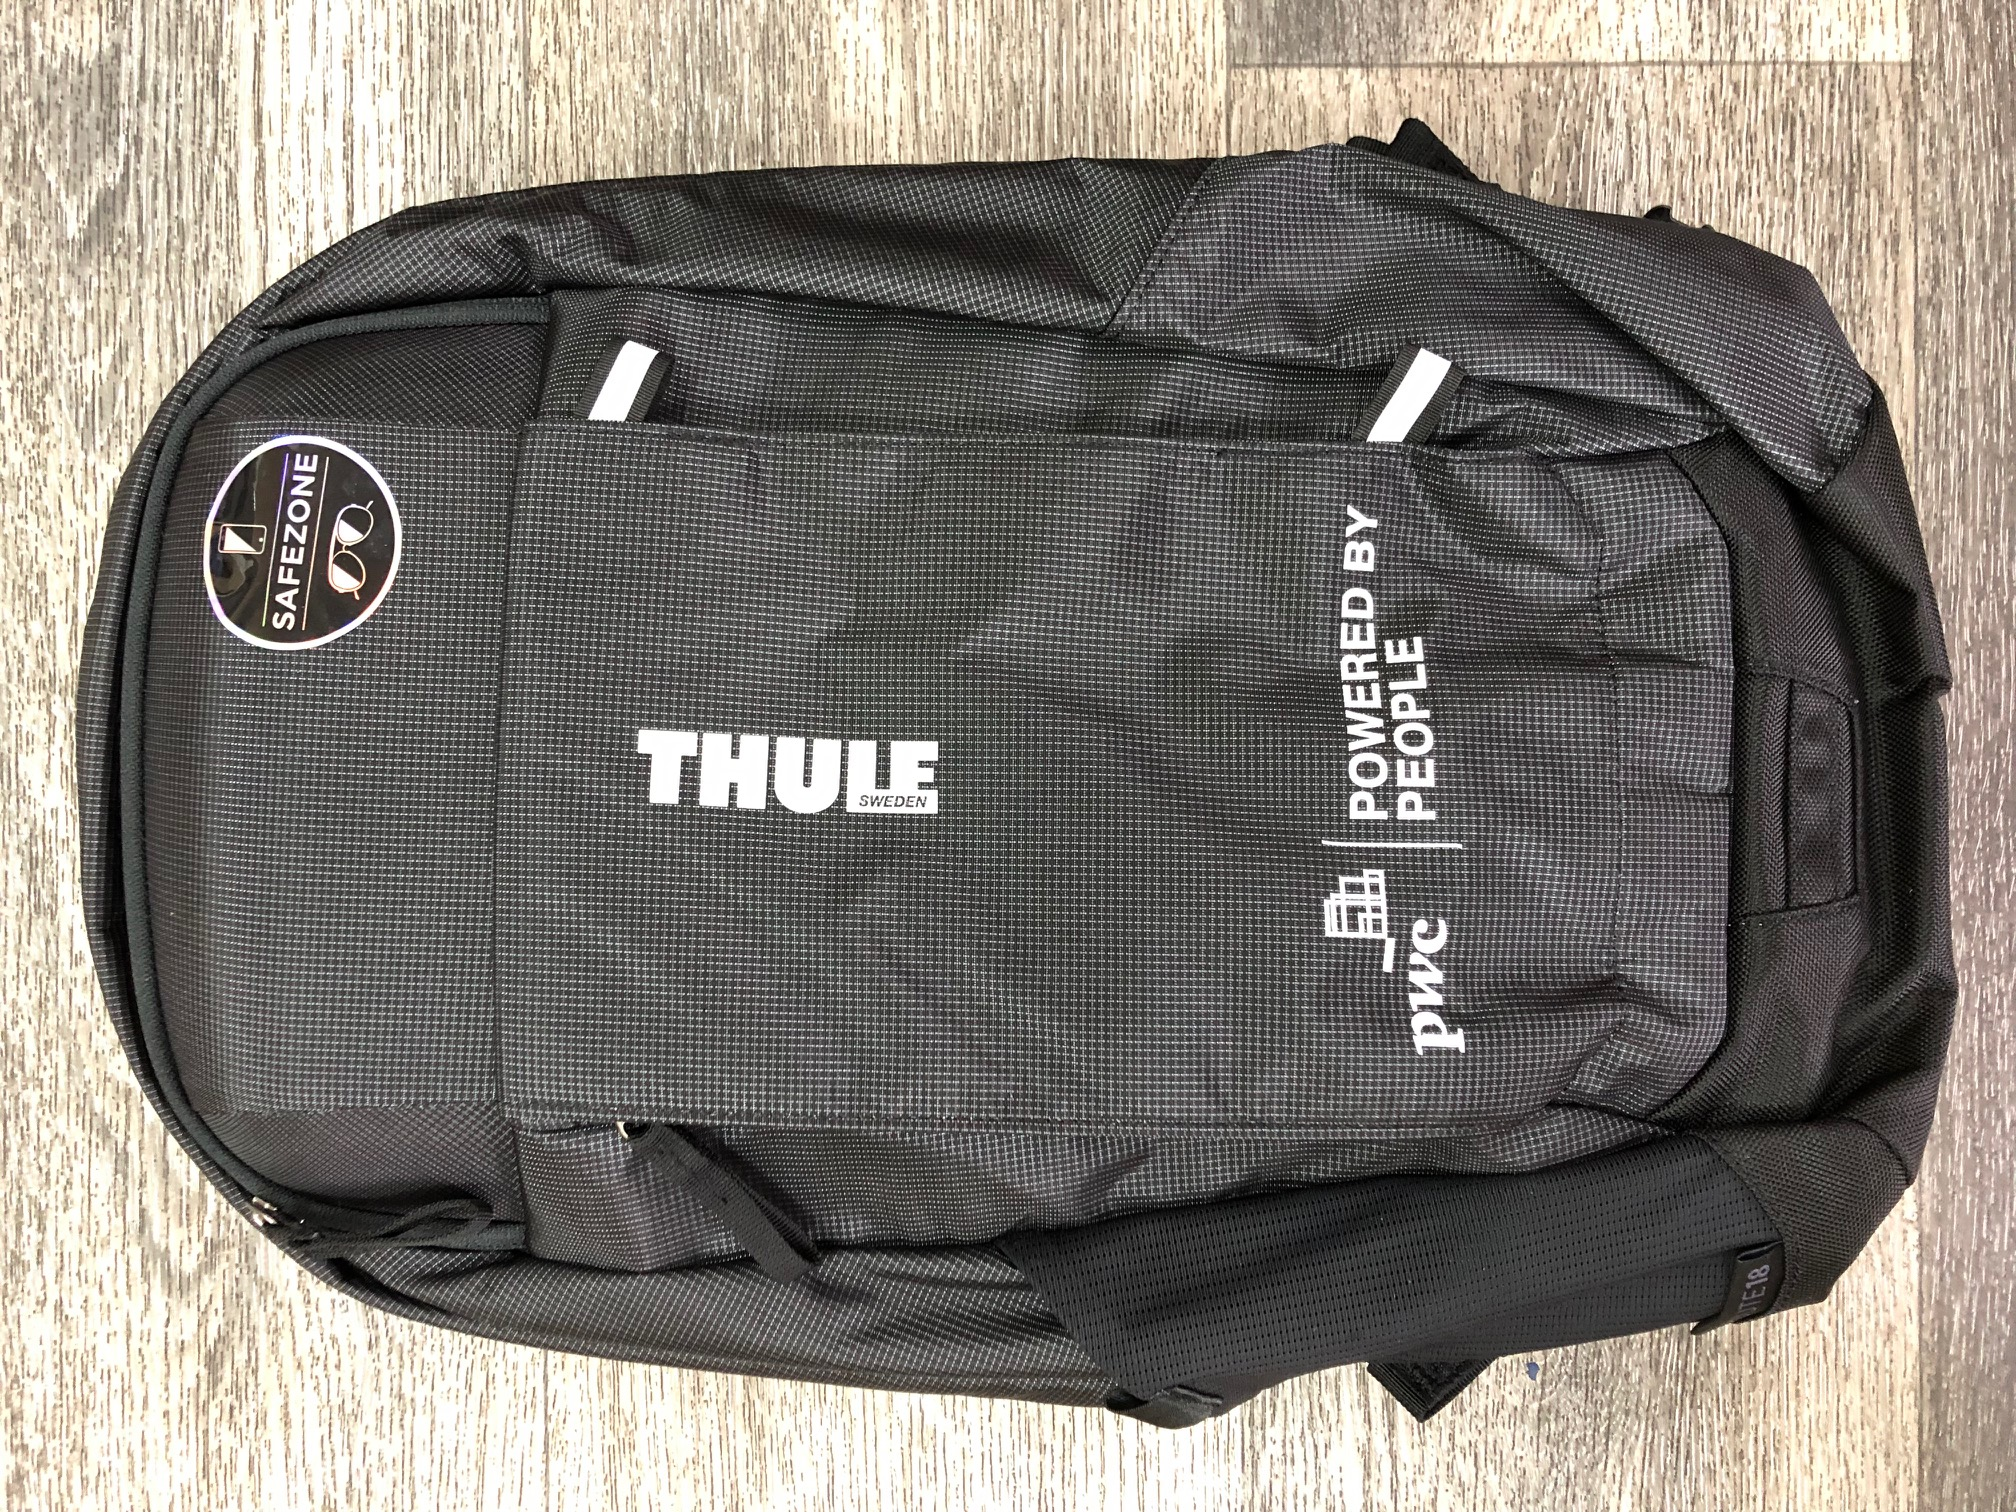 Bags with LOGO